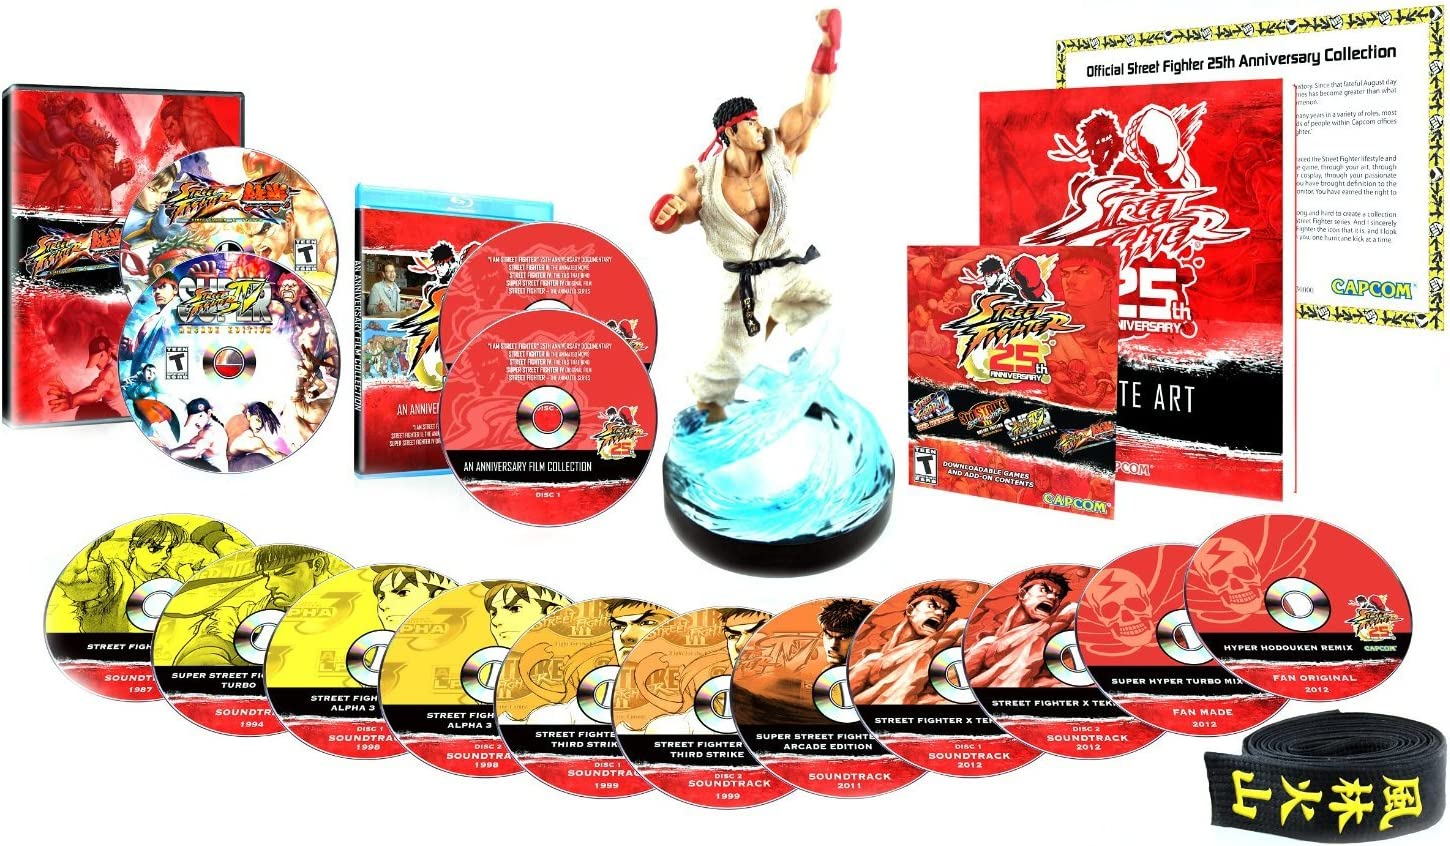 street fighter 25th anniversary collector\\\\\\\\\\\\\\\'s set for xbox 360